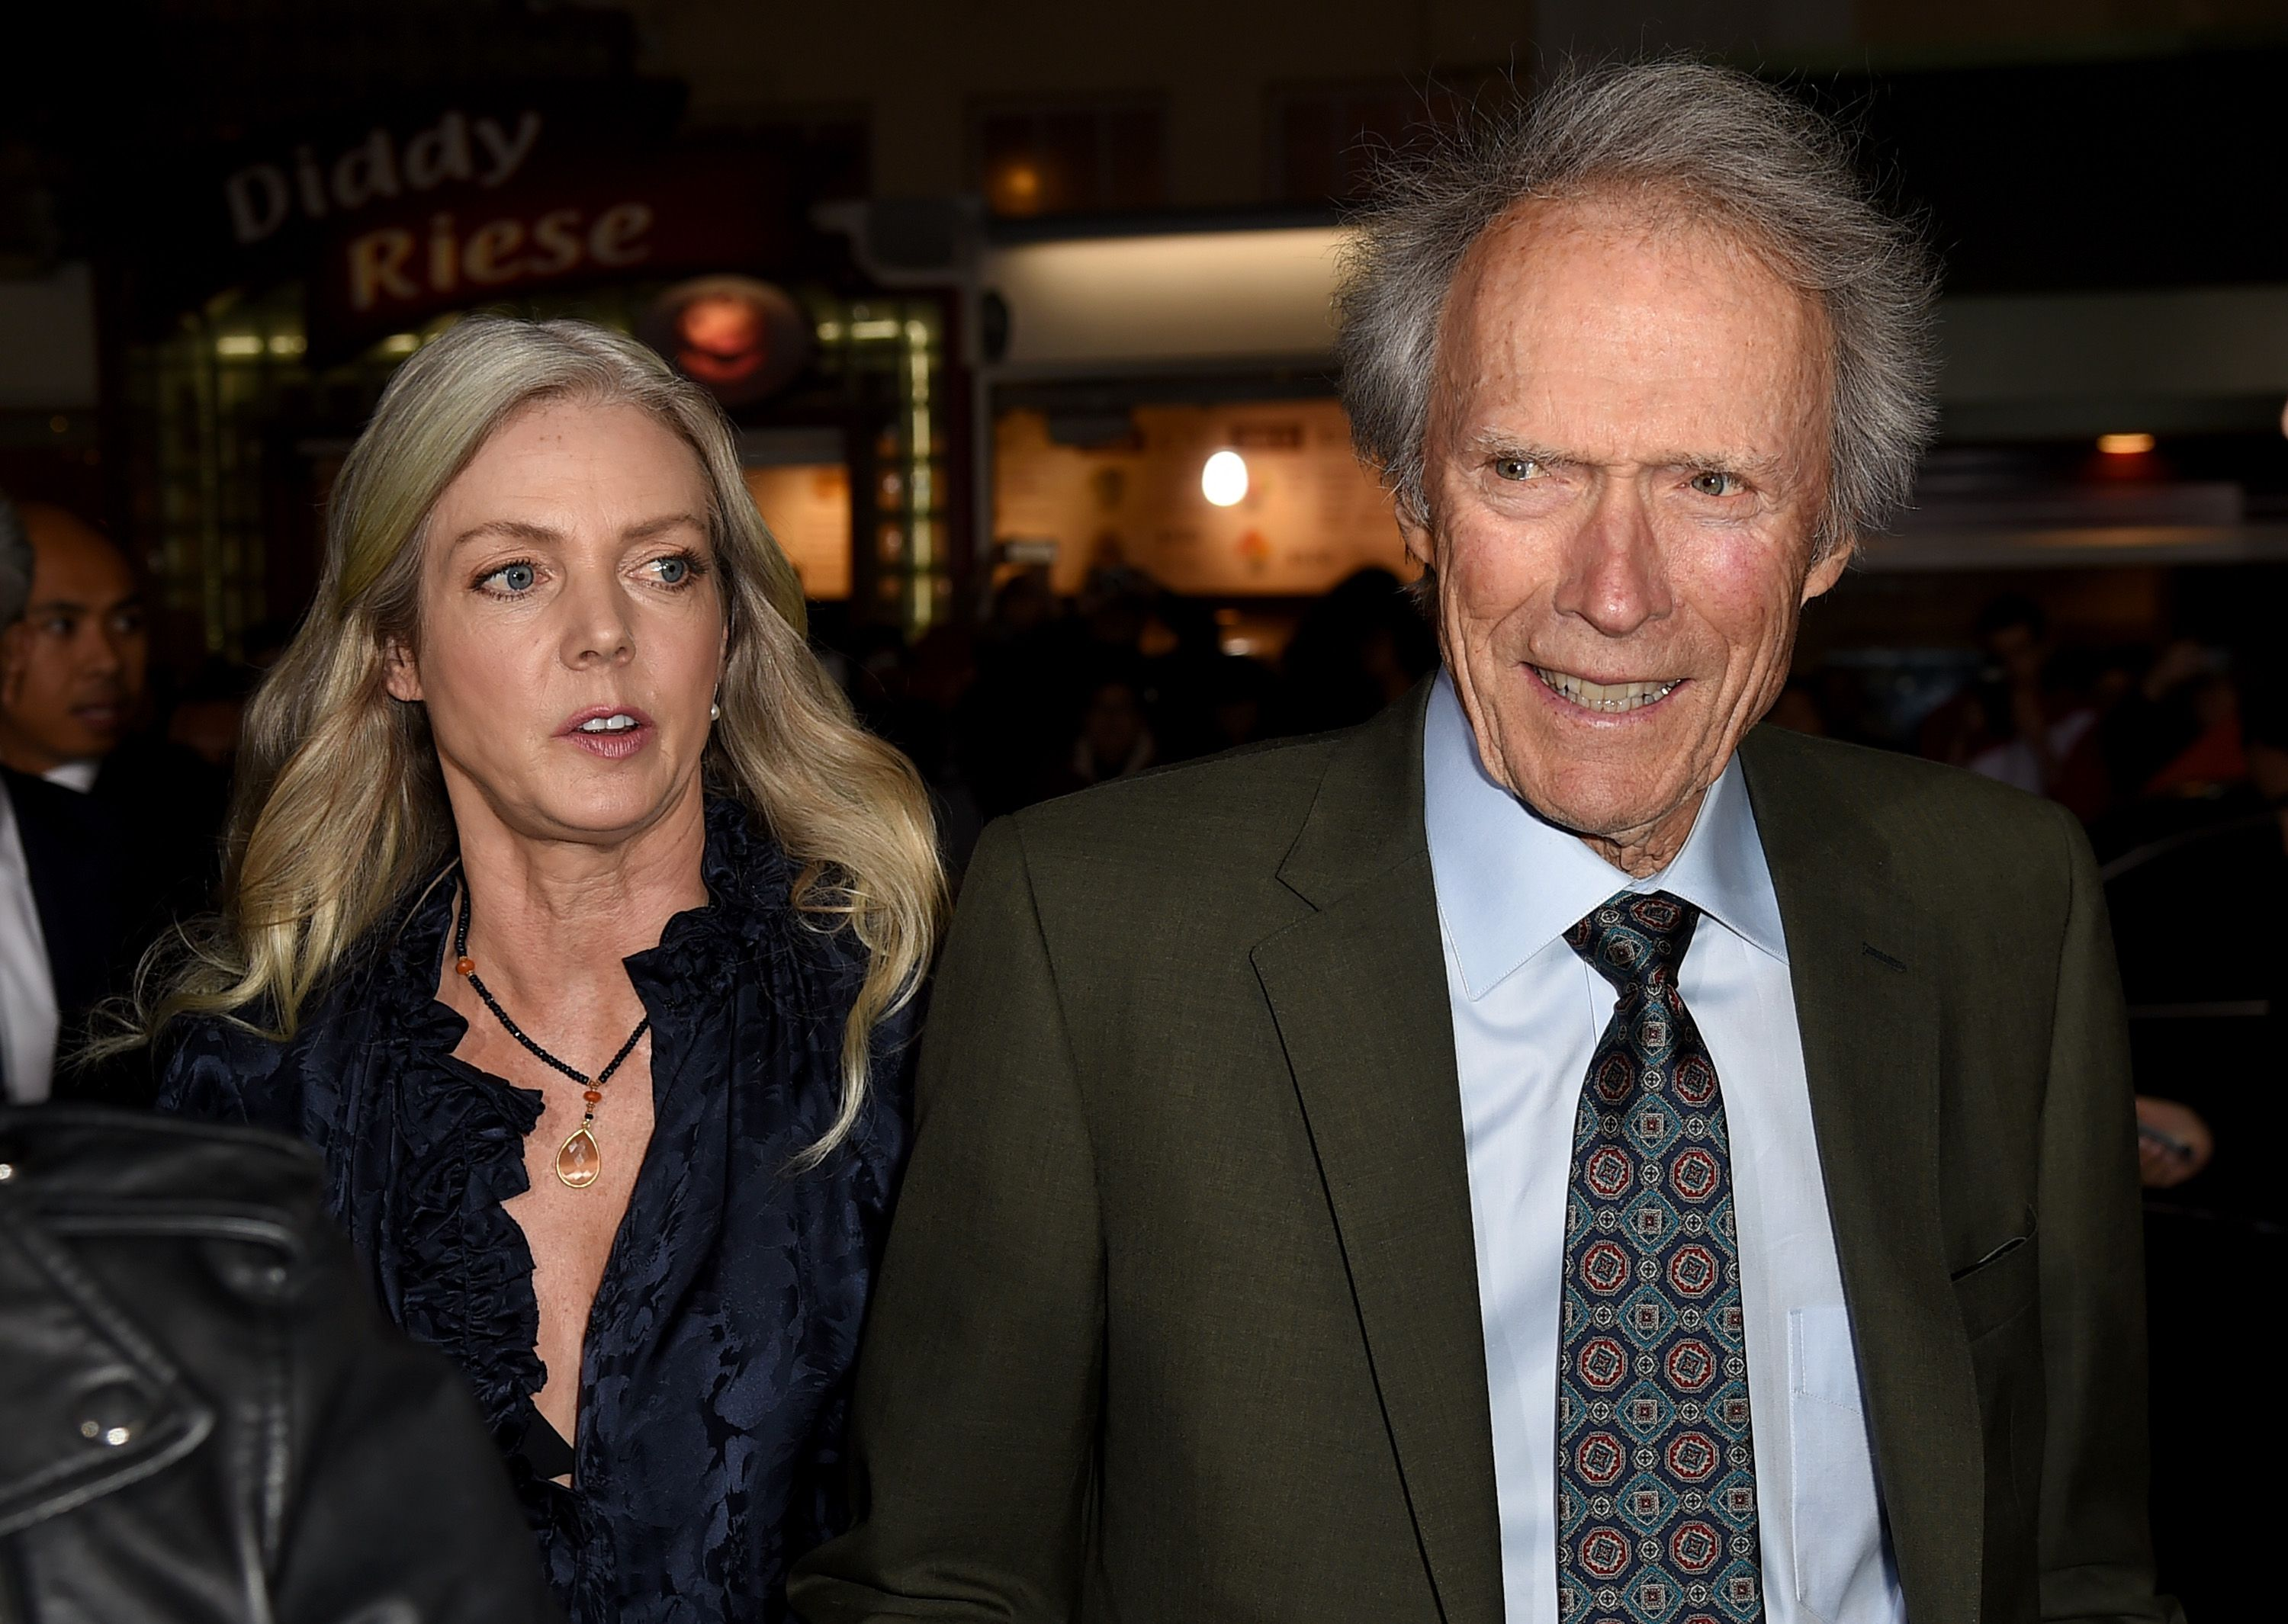 """Christina Sandera and Clint Eastwood at the premiere of Warner Bros. Pictures' """"The Mule"""" at the Village Theatre on December 10, 2018   Photo: Getty Images"""